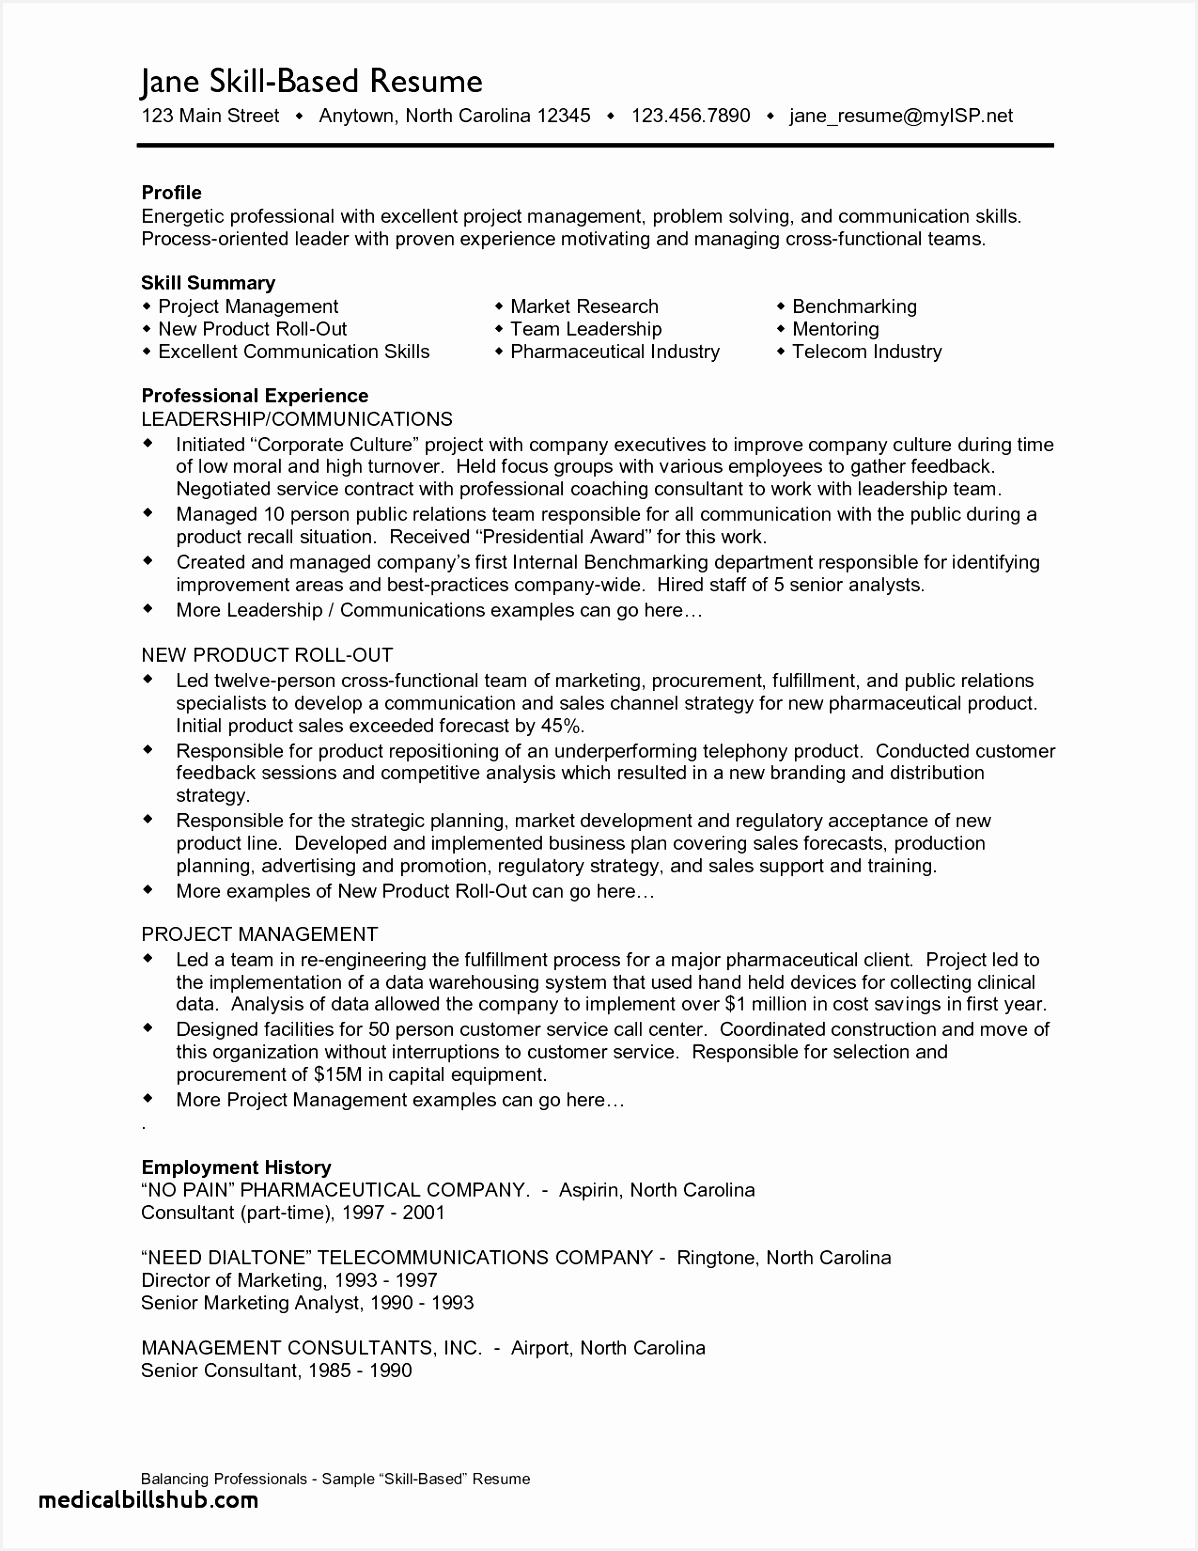 Sample Bank Management Resume R3kac Luxury Sample Resume for Banking Jobs Paragraphrewriter15511198